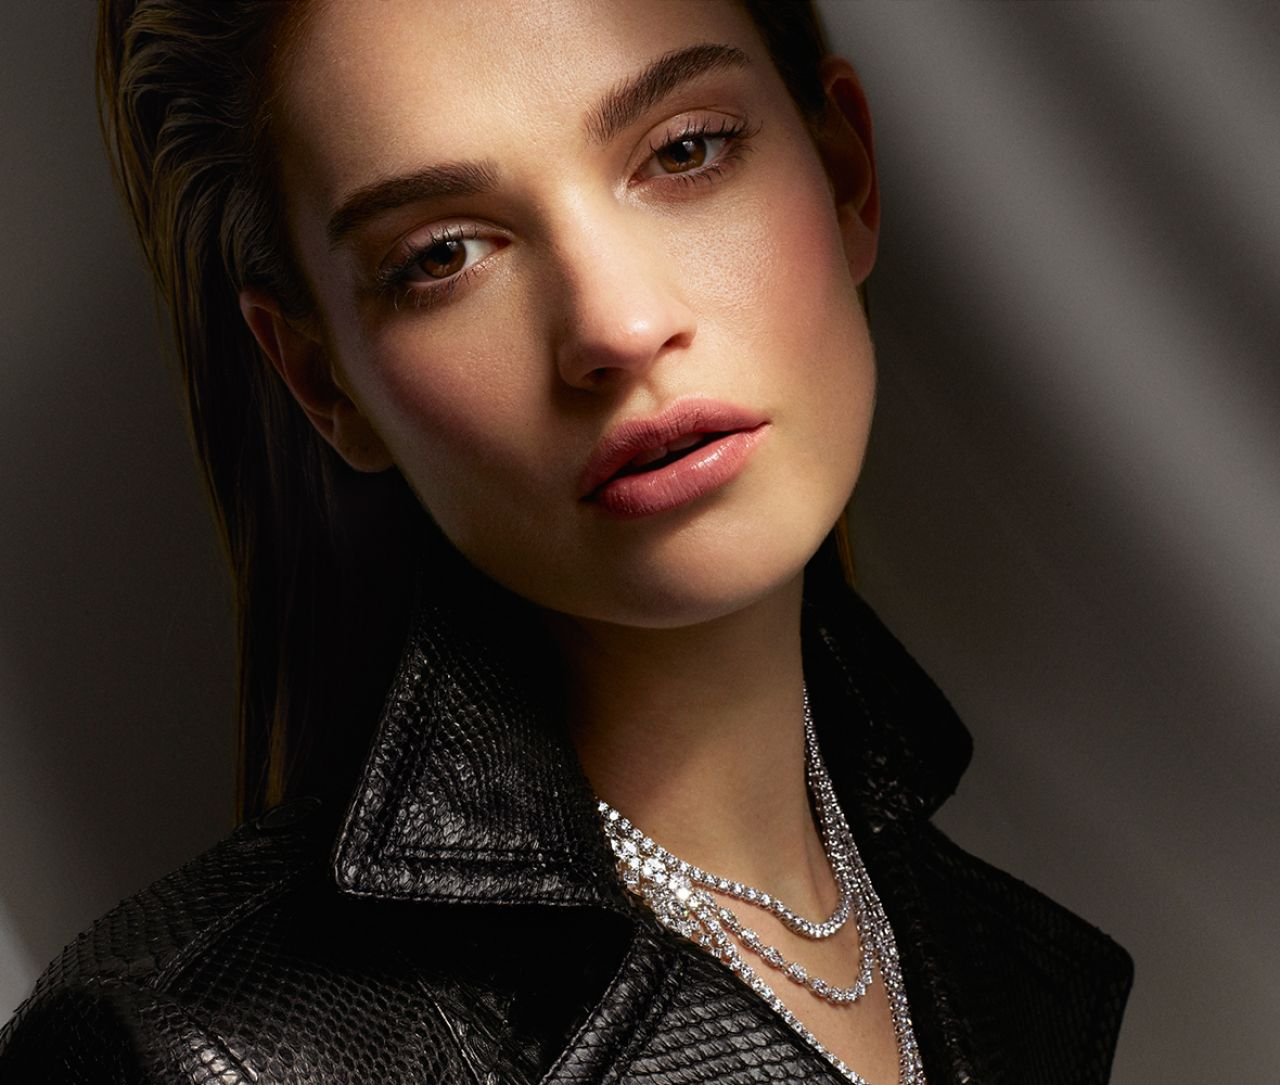 Lily James Vanity Fair On Jewelry Photoshoot August 2015